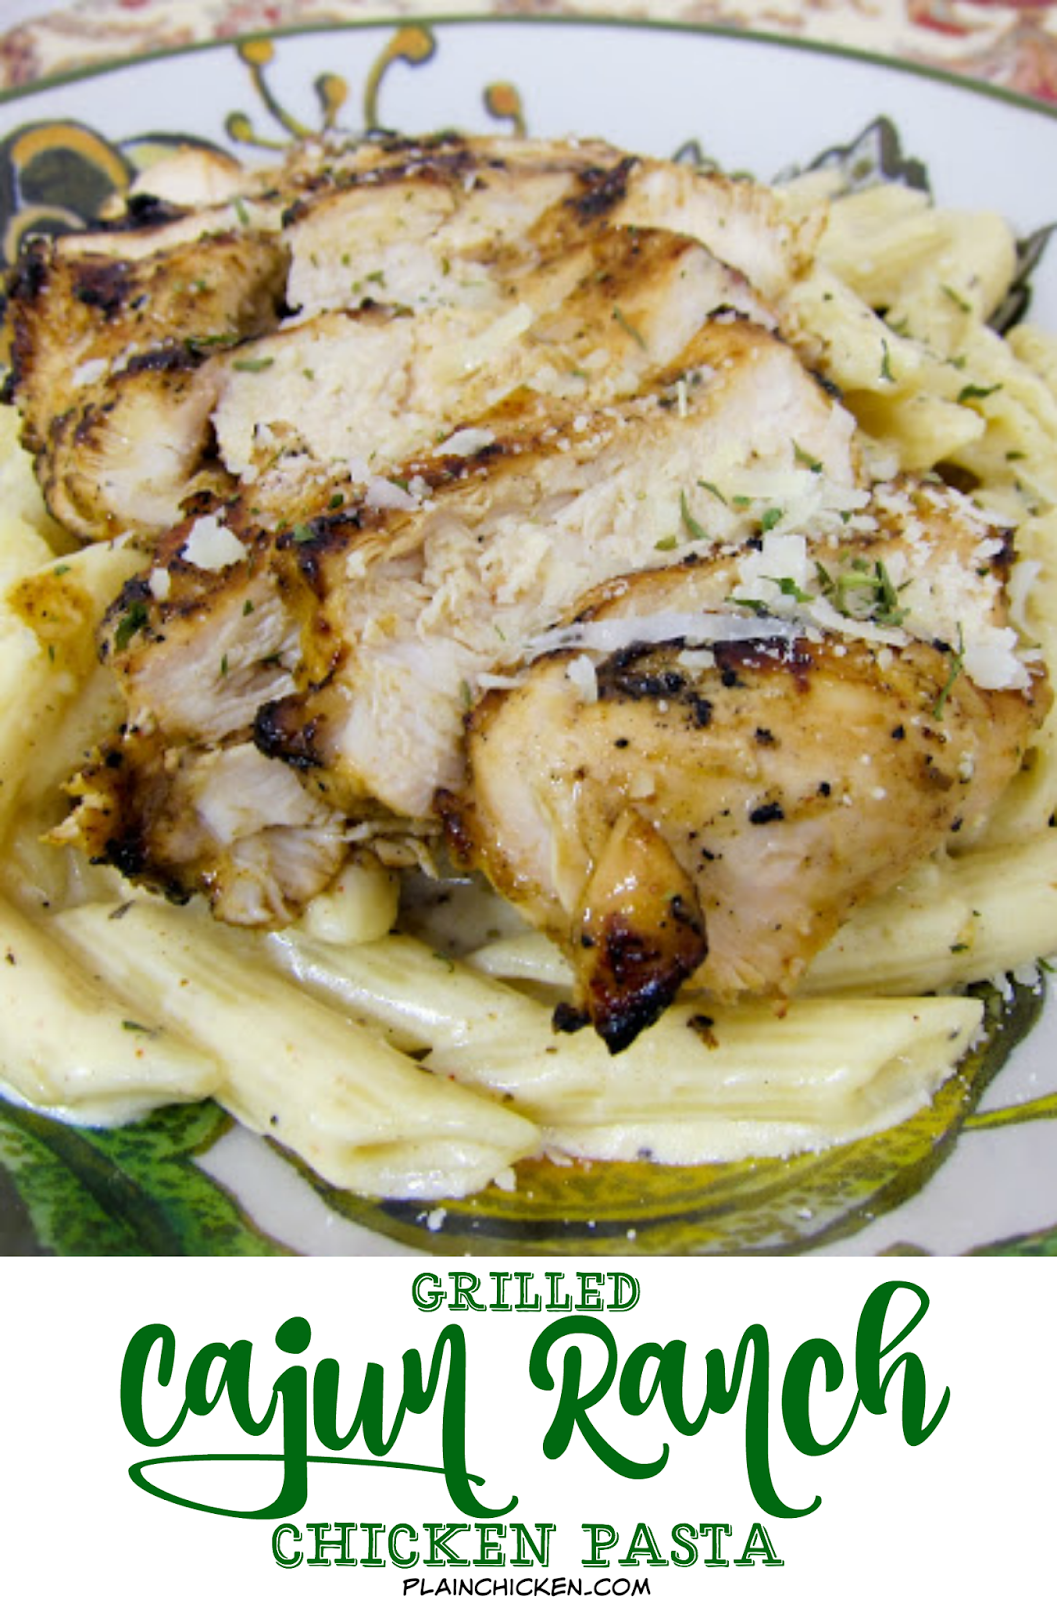 Grilled Cajun Ranch Chicken Pasta - restaurant quality! Chicken marinated in a cajun ranch mixture and grilled, then tossed in a creamy cajun alfredo. I wanted to lick the plate! We made this two days in a row!!